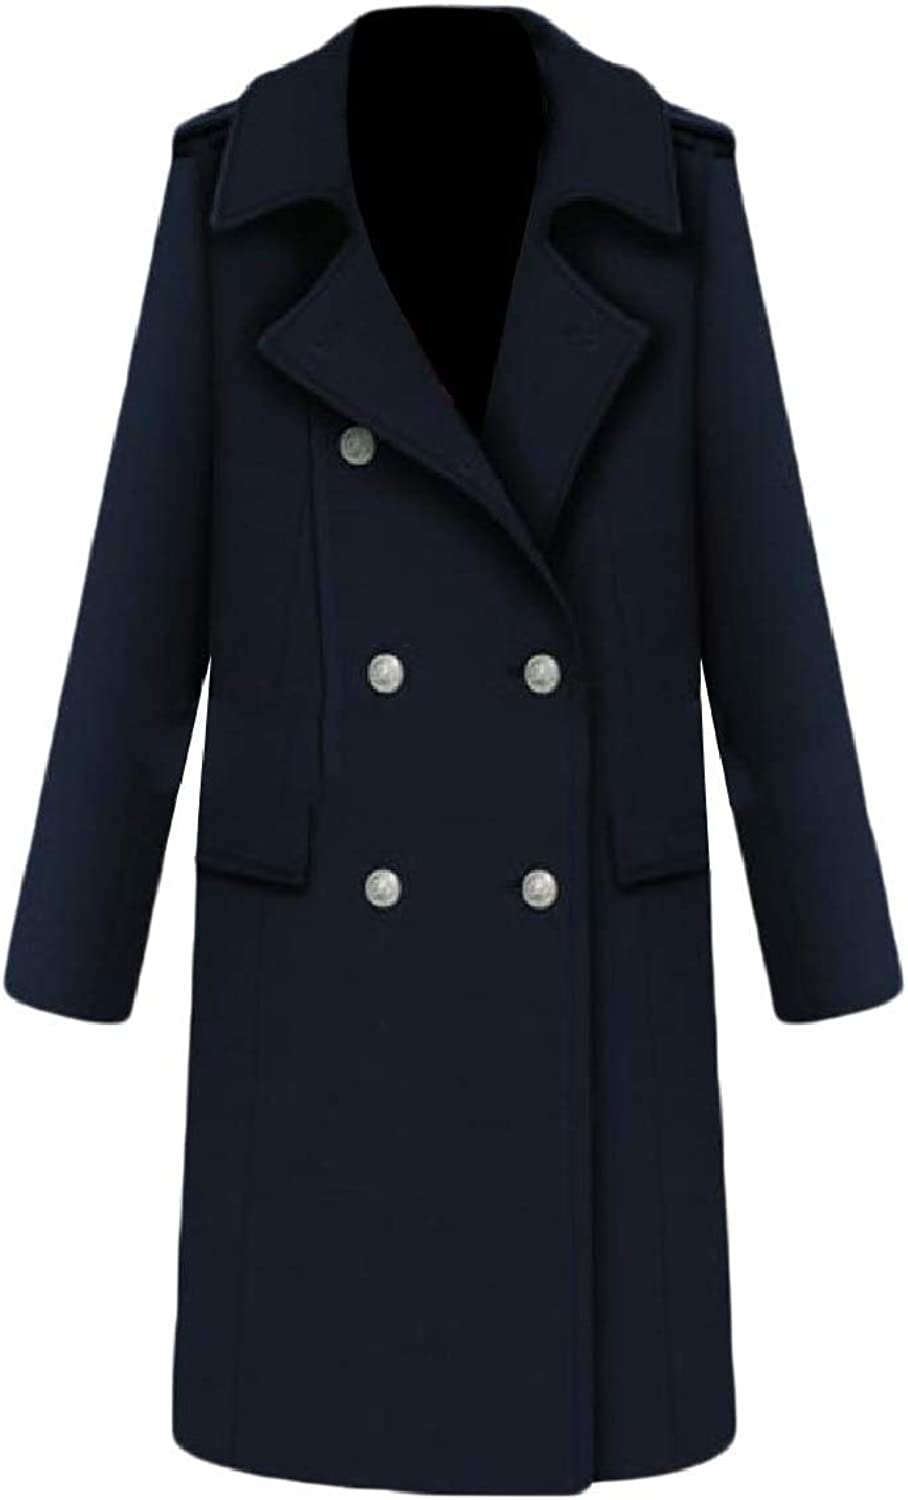 Abetteric Women's Long Thick Slim Fitted Double Button Wool Worsted Coat